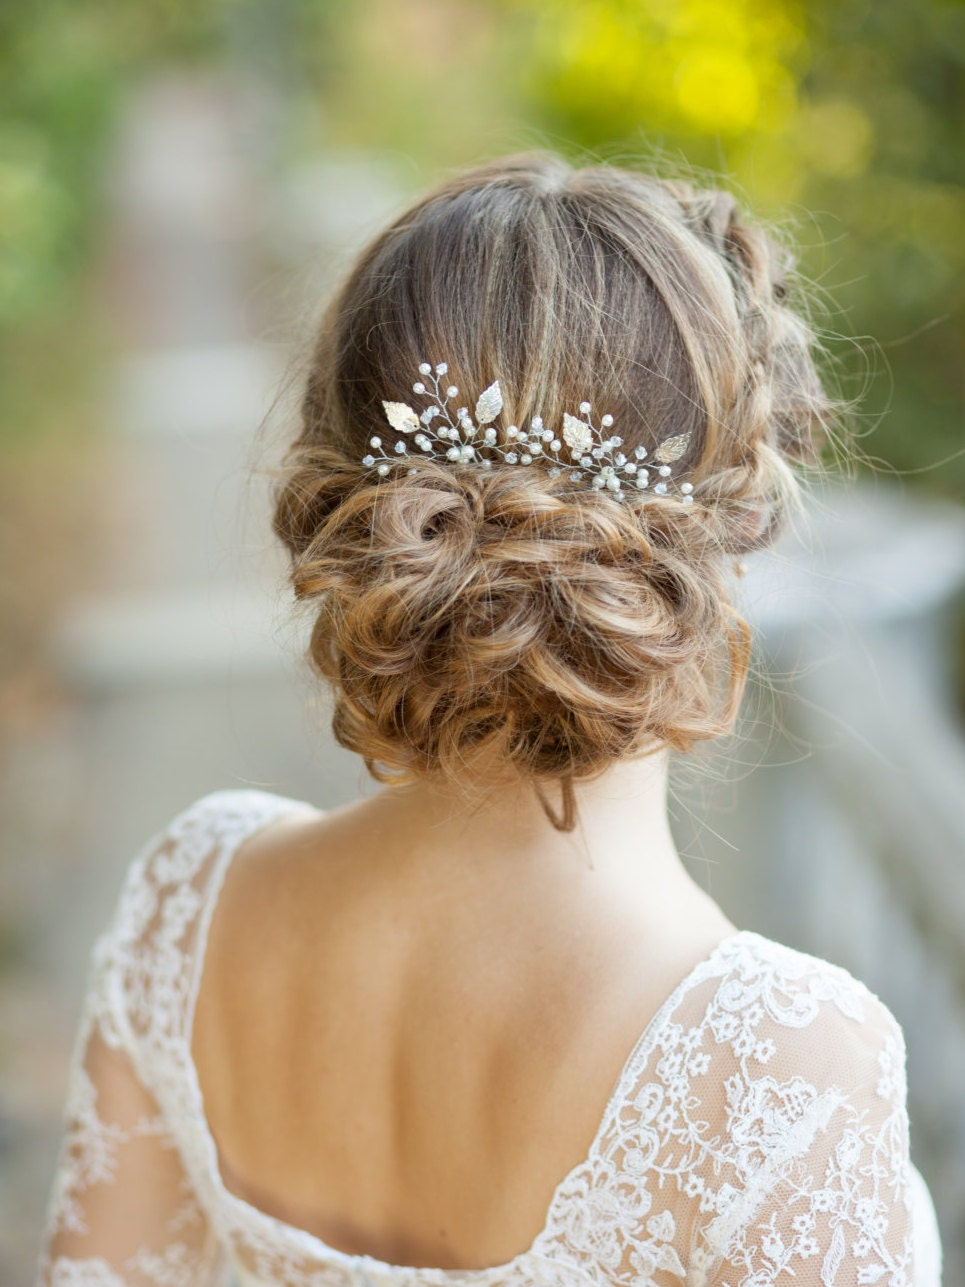 Bridal Hair With Pins : Bridal hair wedding set of two silver